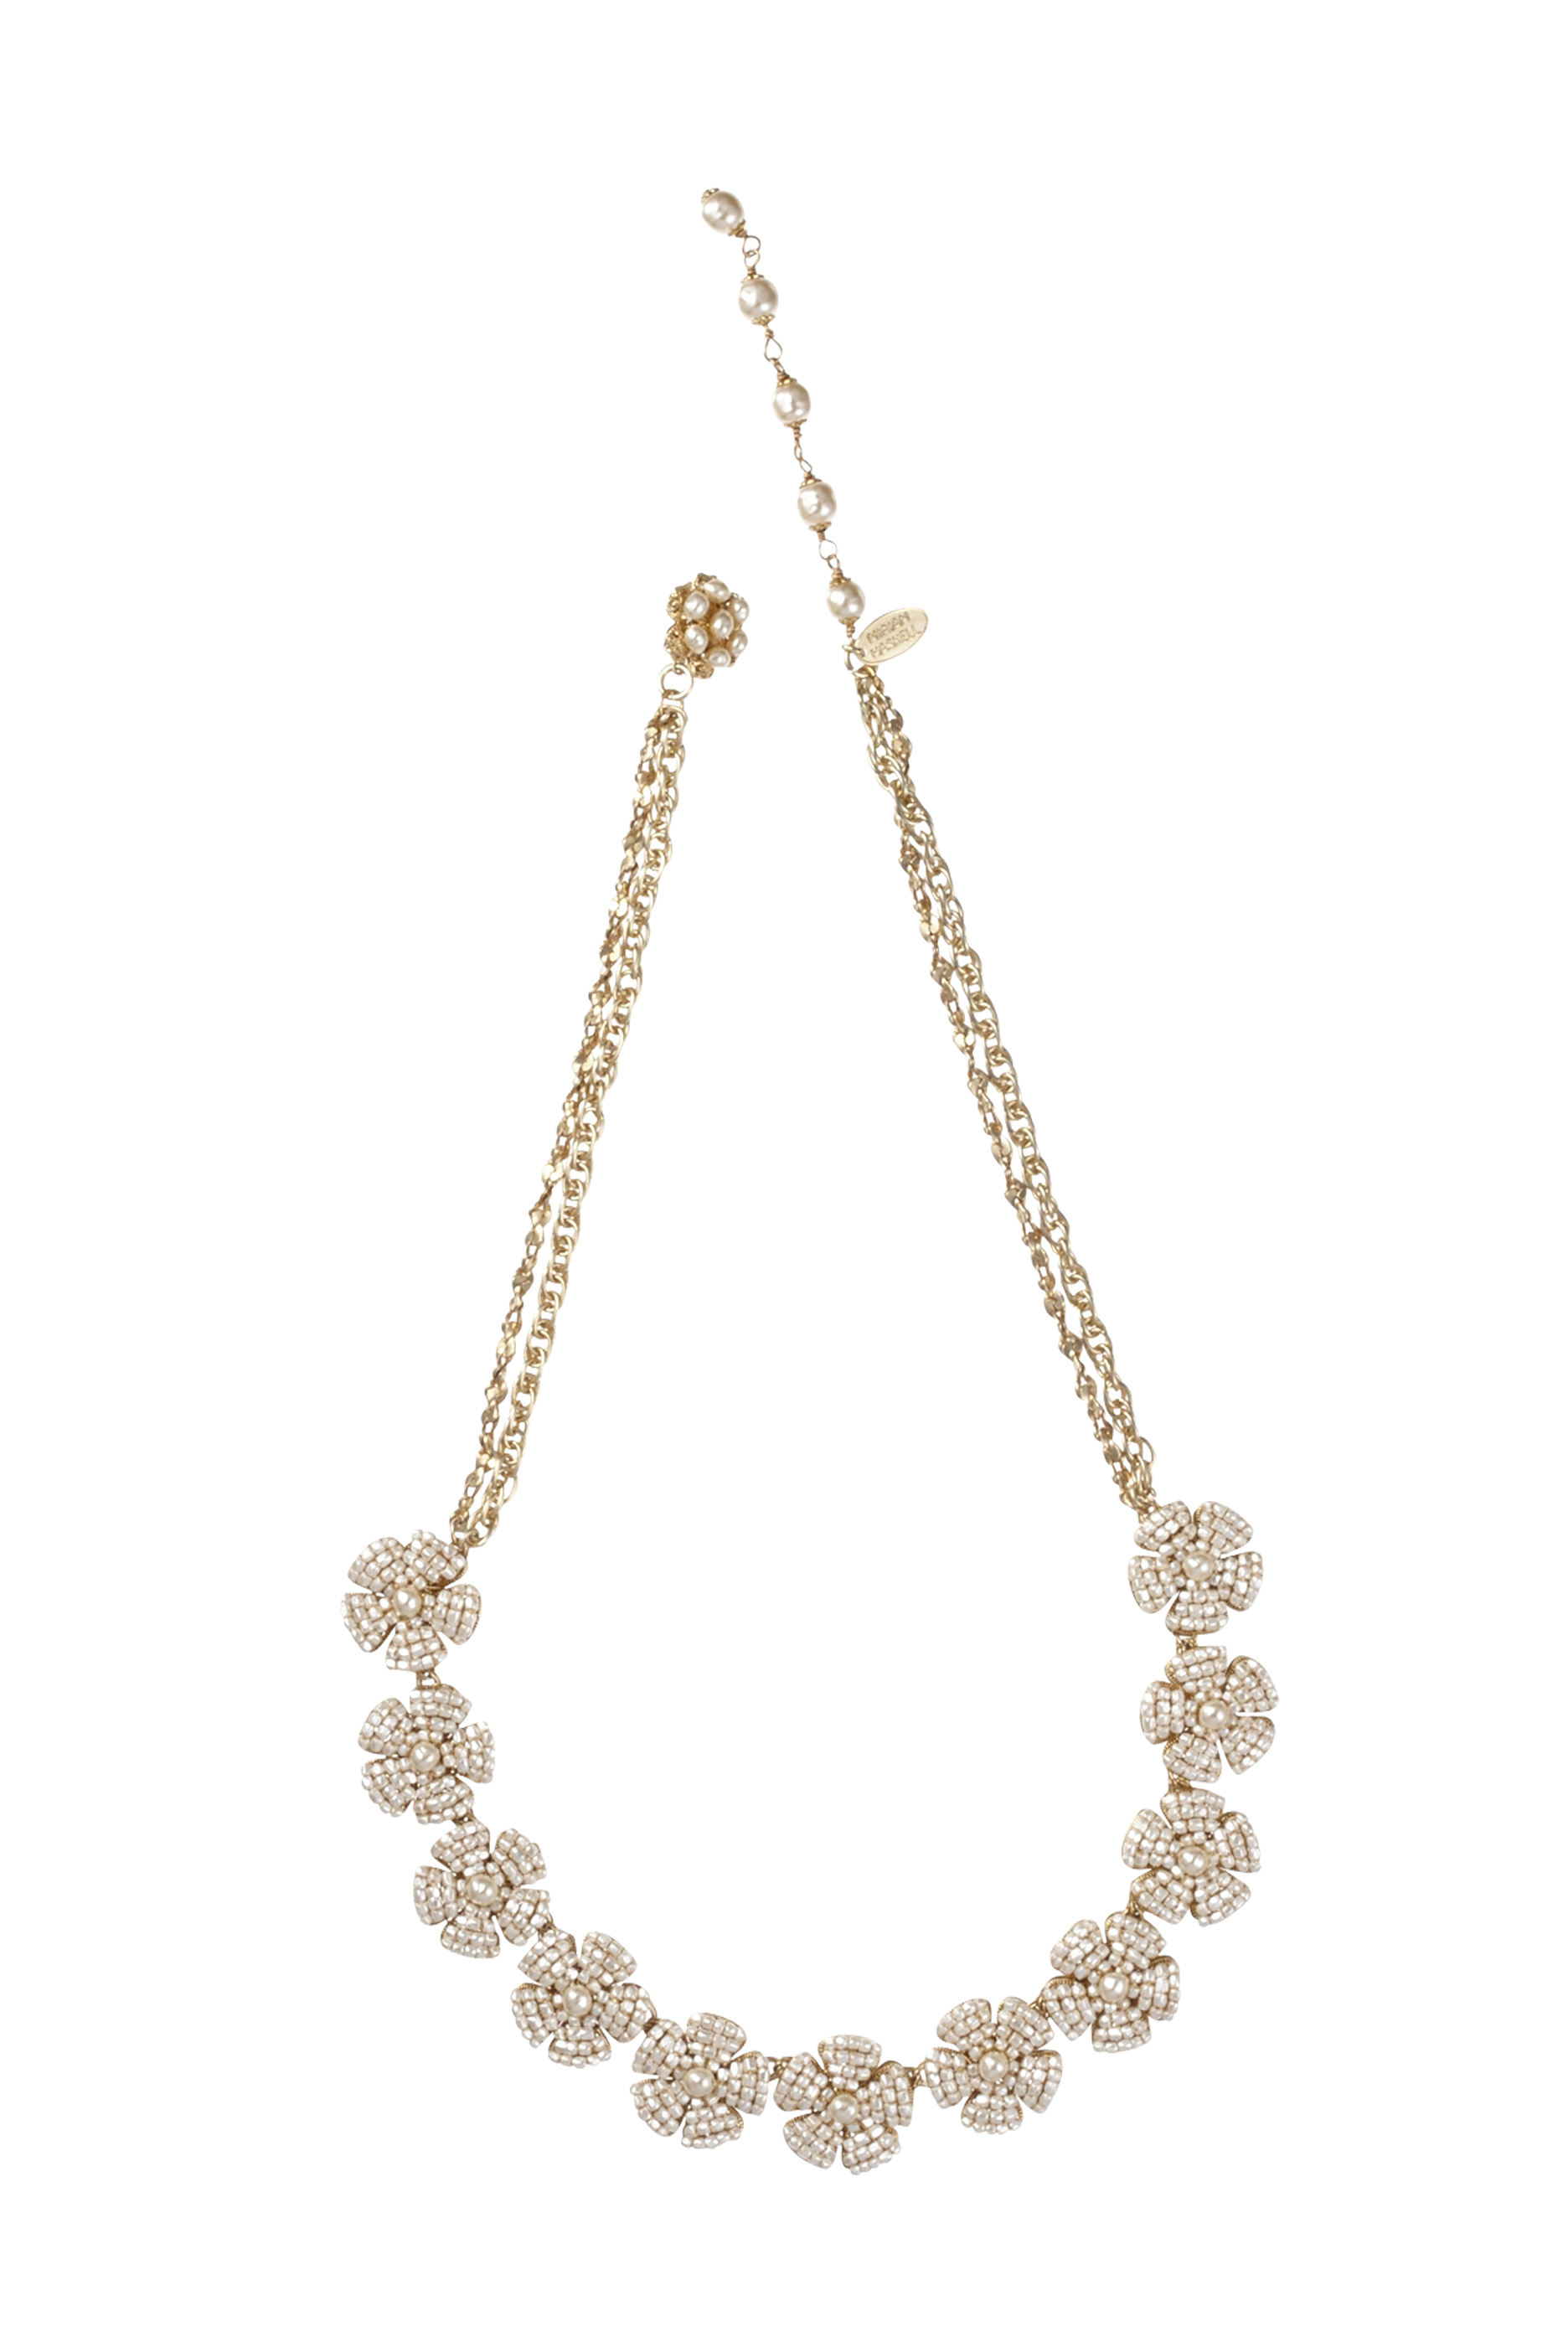 [RENTAL][BIB FLOWER Necklace]by MIRIAM HASKELL